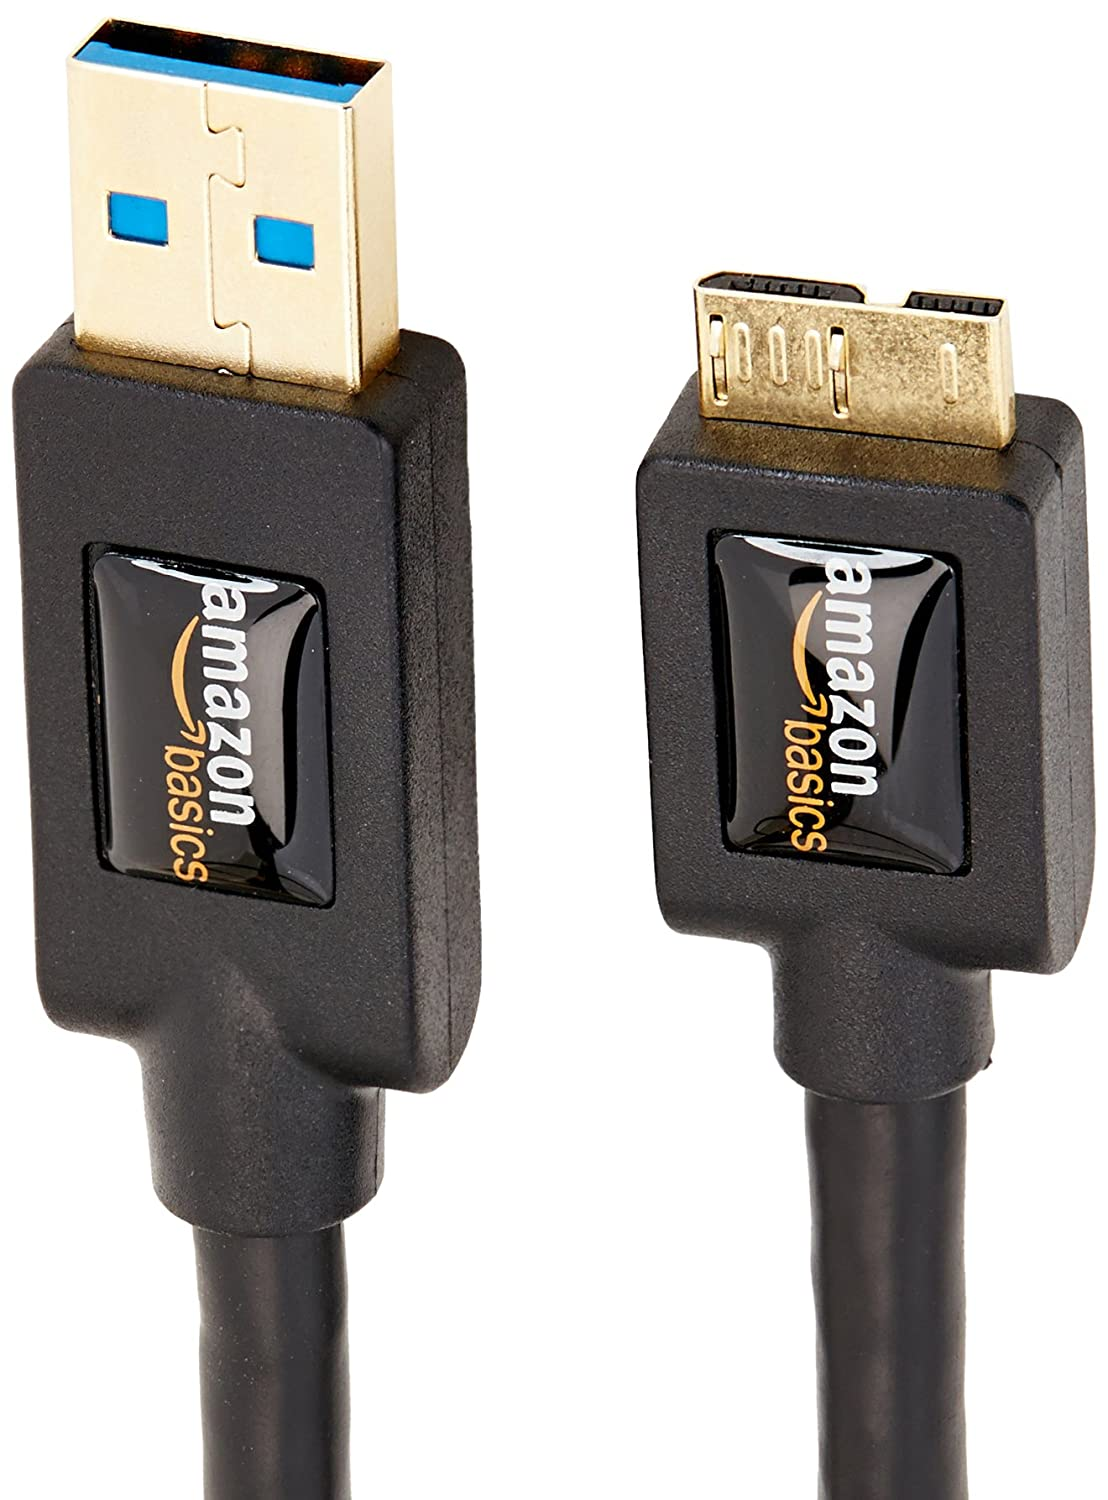 Amazonbasics Usb 30 Cable A Male To Micro B 3 Feet 09 Meters Host Wiring Diagram Black Electronics